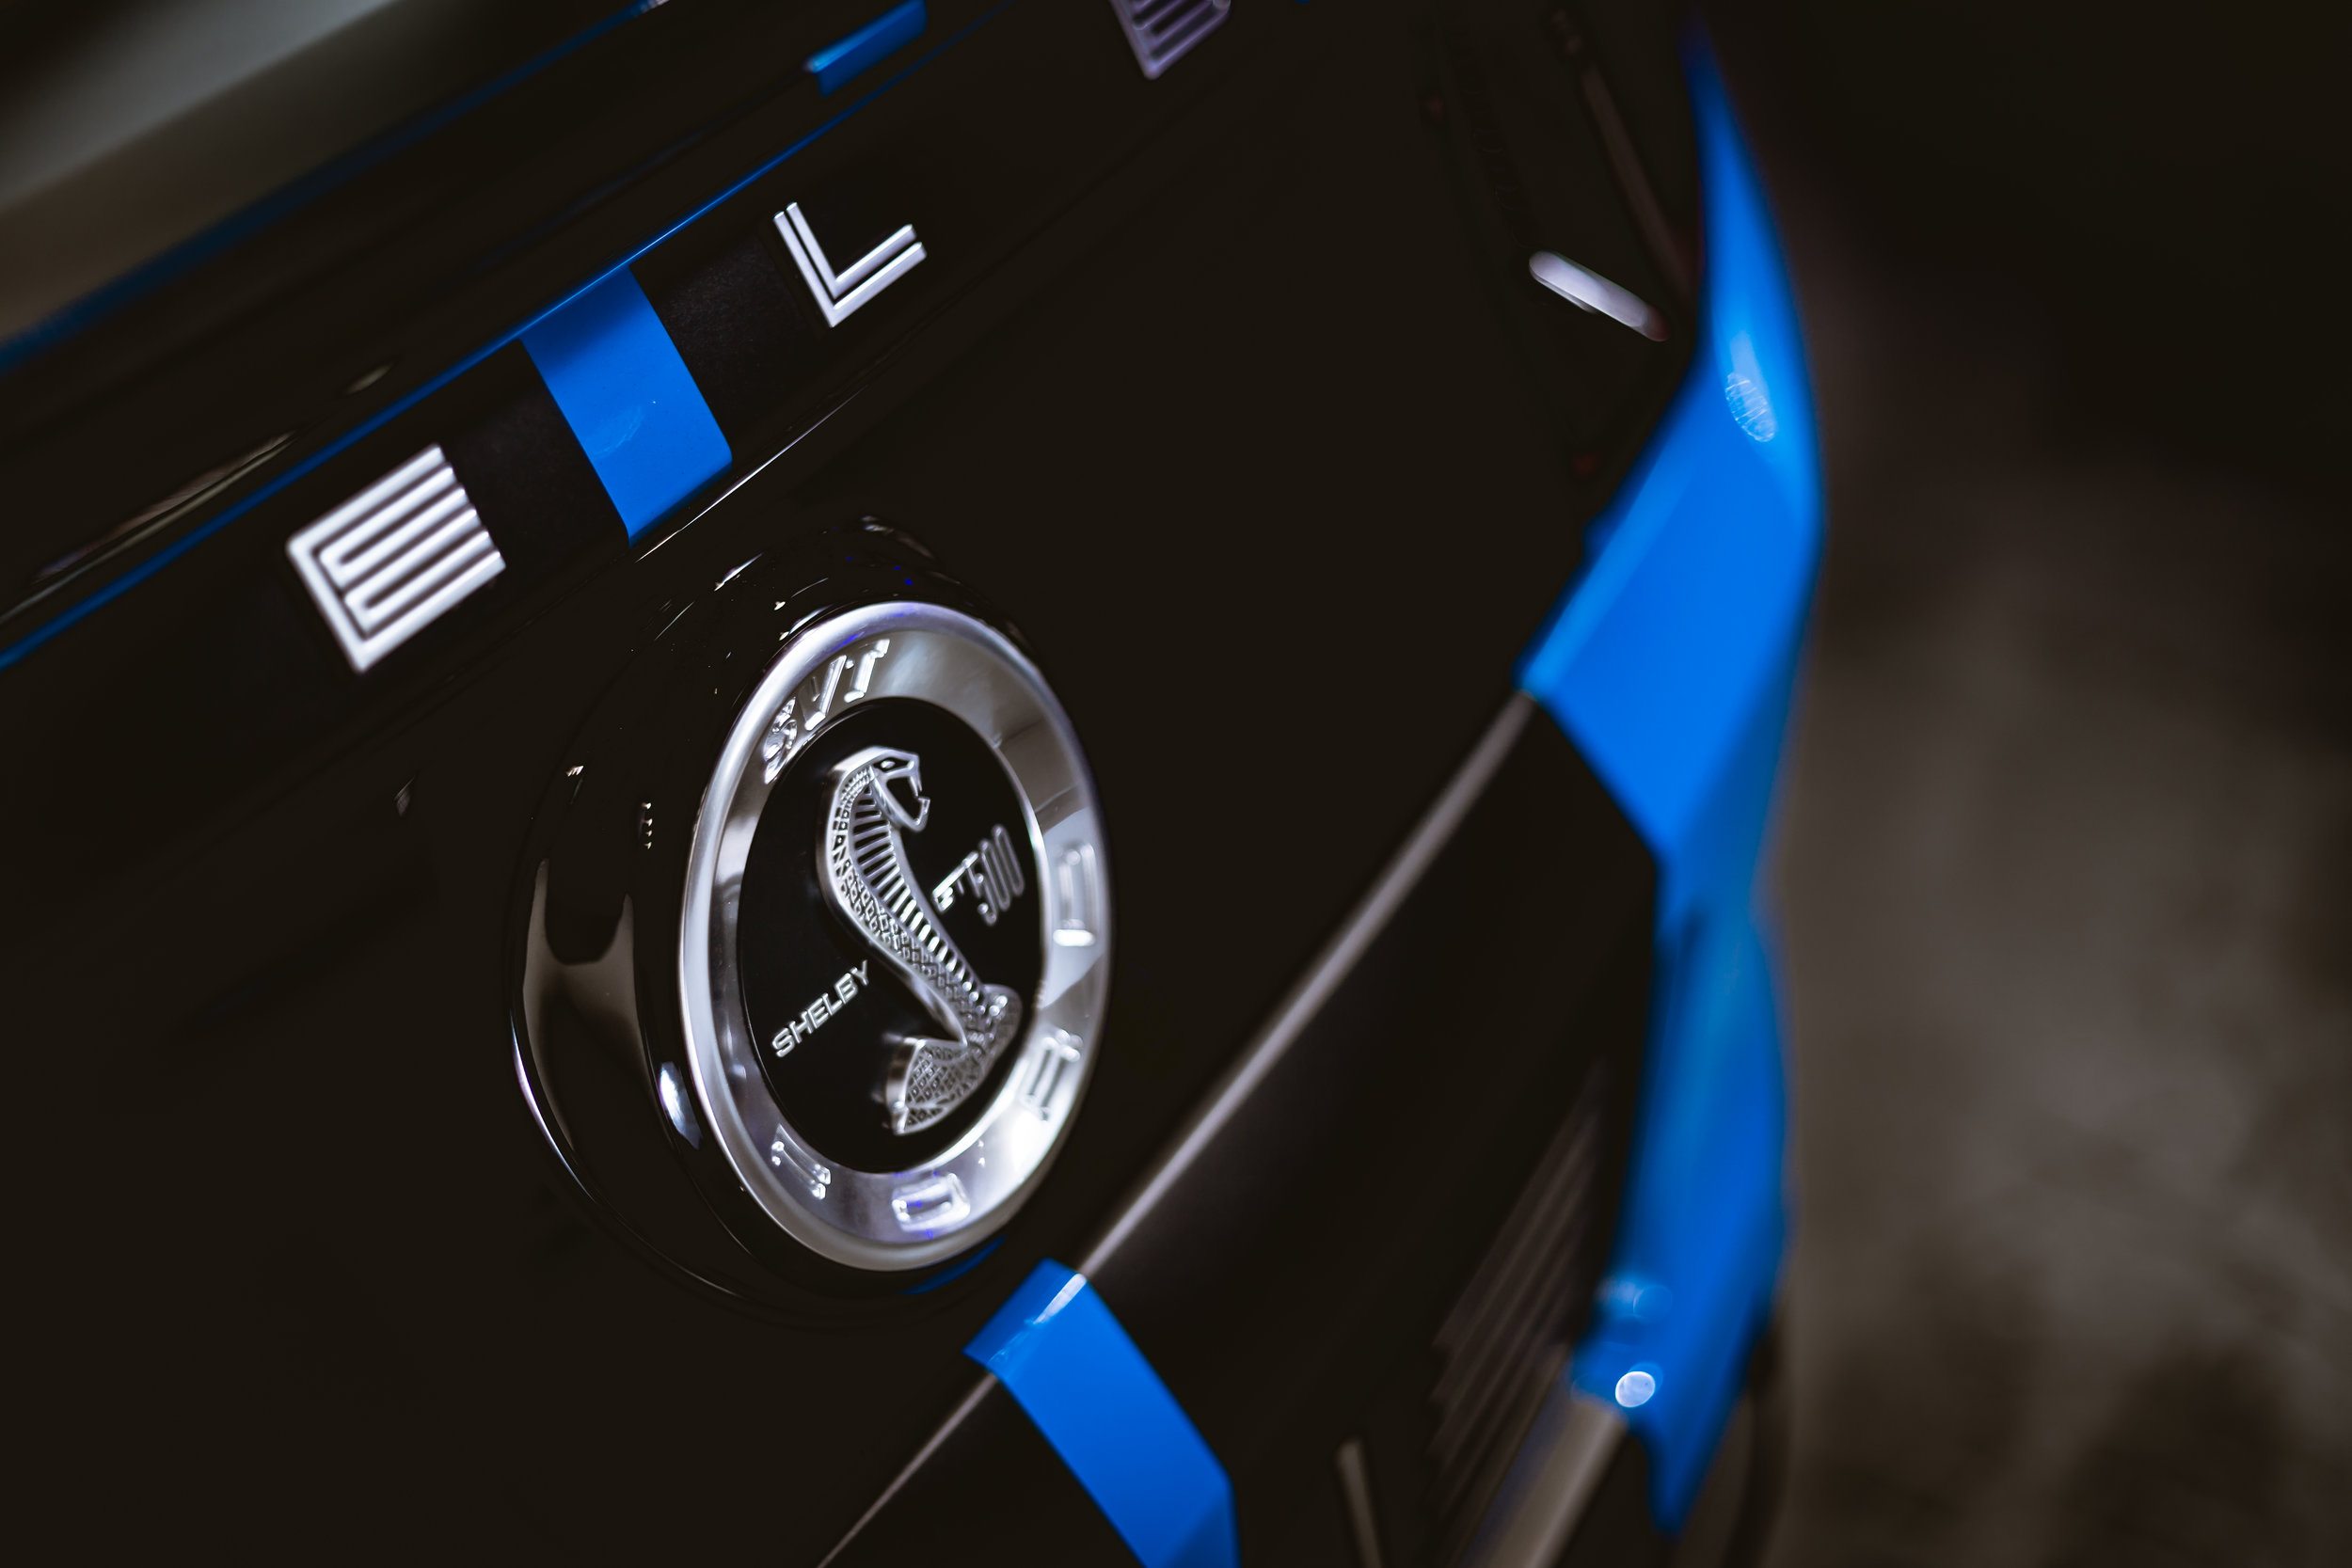 2014 Shelby Mustang GT500-no bar-2.jpg